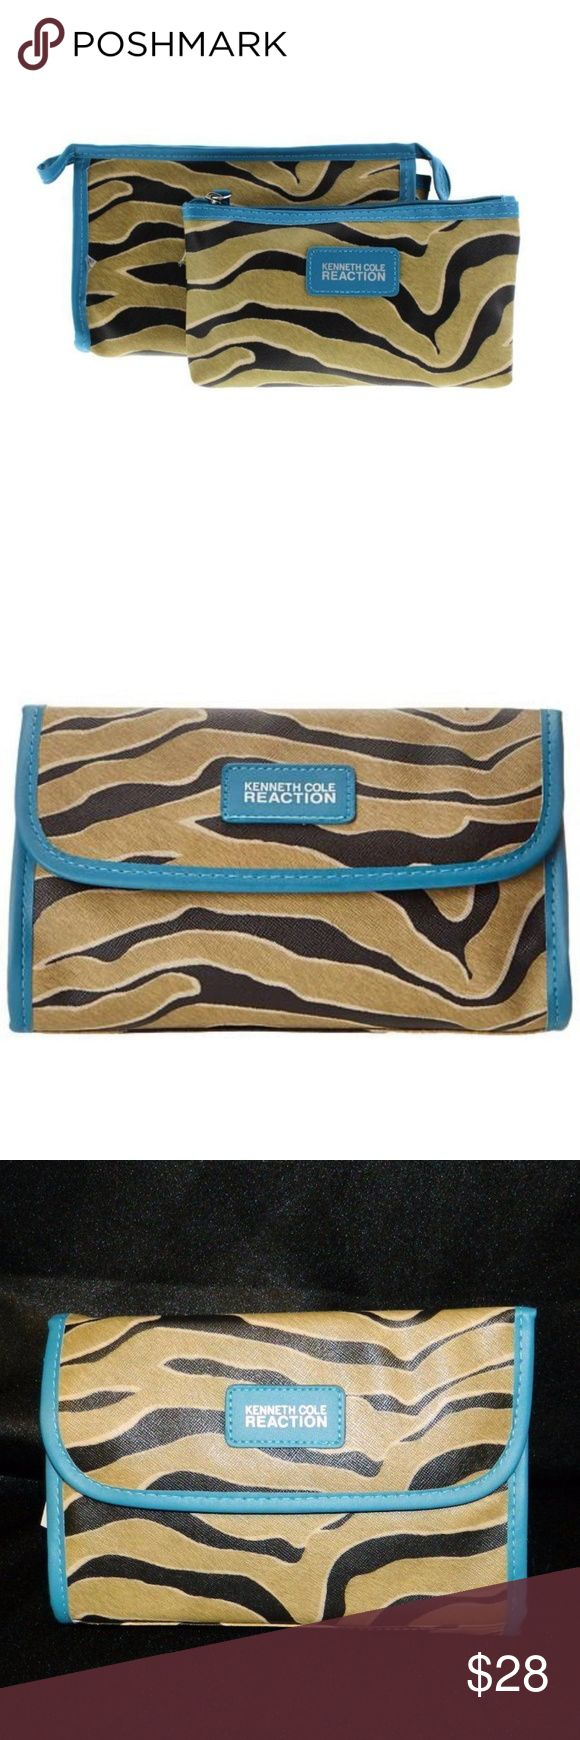 KENNETH COLE REACTION Zebra 2pc East/West SET MEASUREMENTS: (Measurements are in inches, laid flat so double for all the way around when needed)  Total Length: 8  Height:5  Brand: Kenneth Cole Reaction  Condition: new with tags & Ribbon   Color: brown, aqua blue, black  Material: synthetic, man made  Brief Detail: This is a small mirrored cosmetic makeup bag with a demi flap closure with two snaps, and an inside zipper.   Clutch/Cosmetic/Toiletries   Know sizes & look at pics. All Sales…